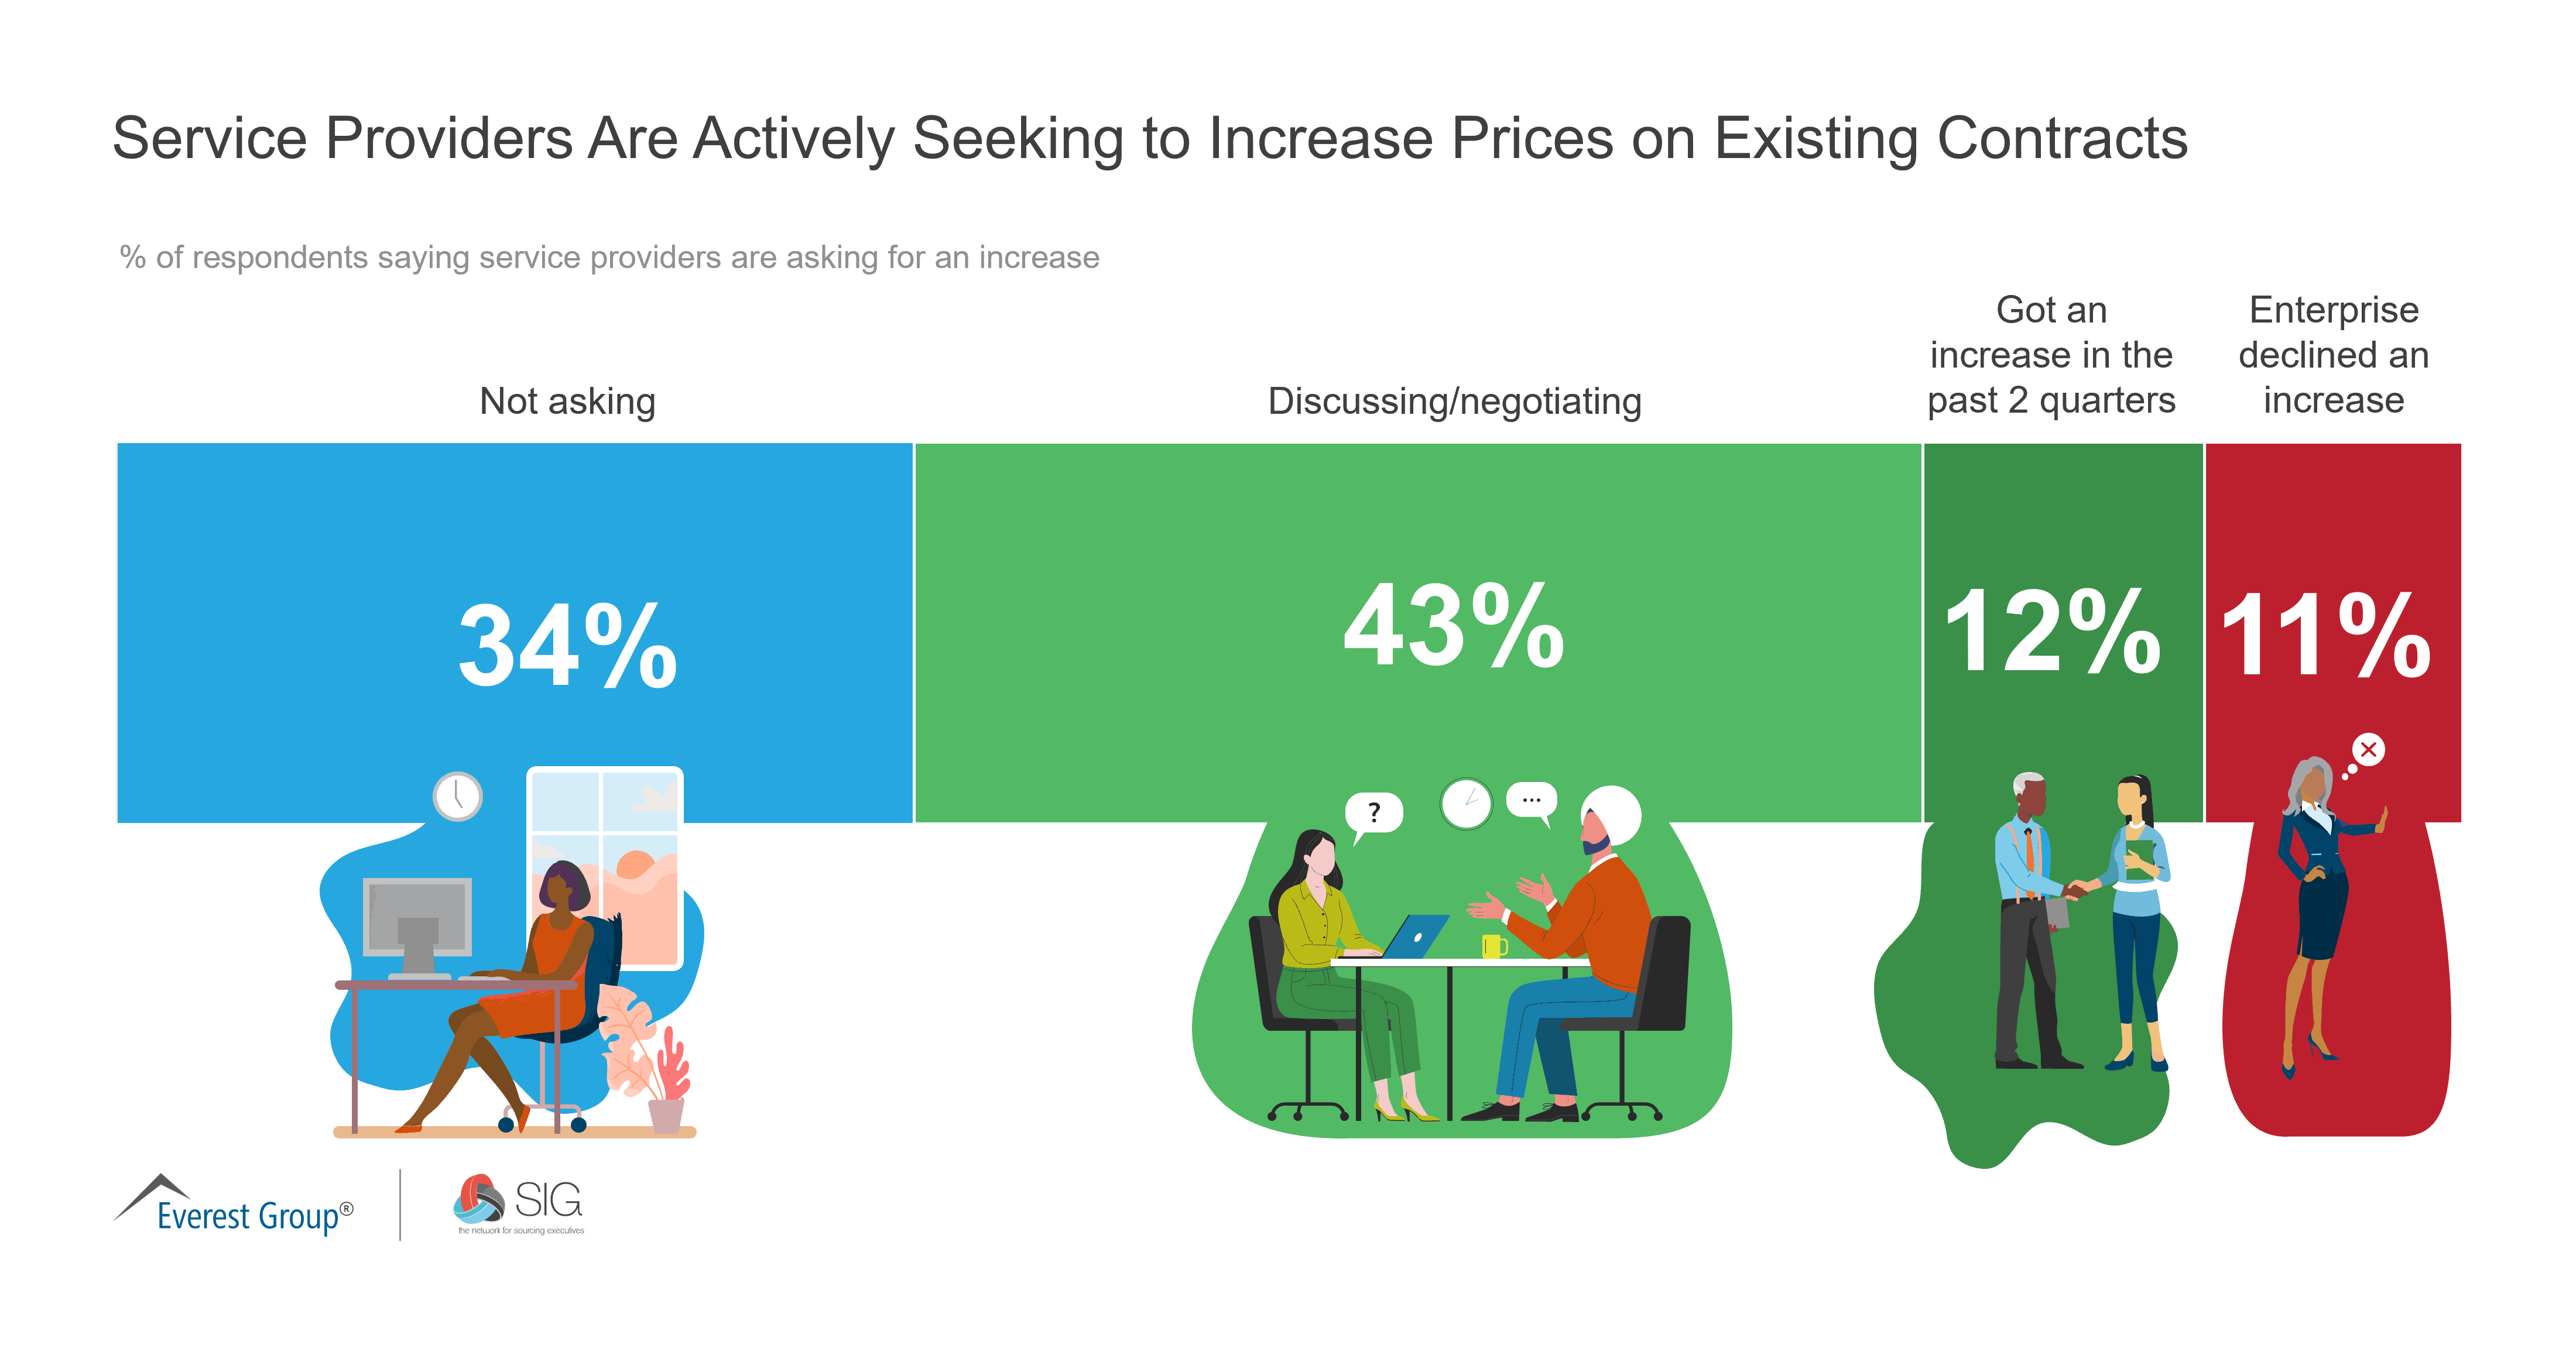 Service Providers Are Actively Seeking to Increase Prices on Existing Contracts